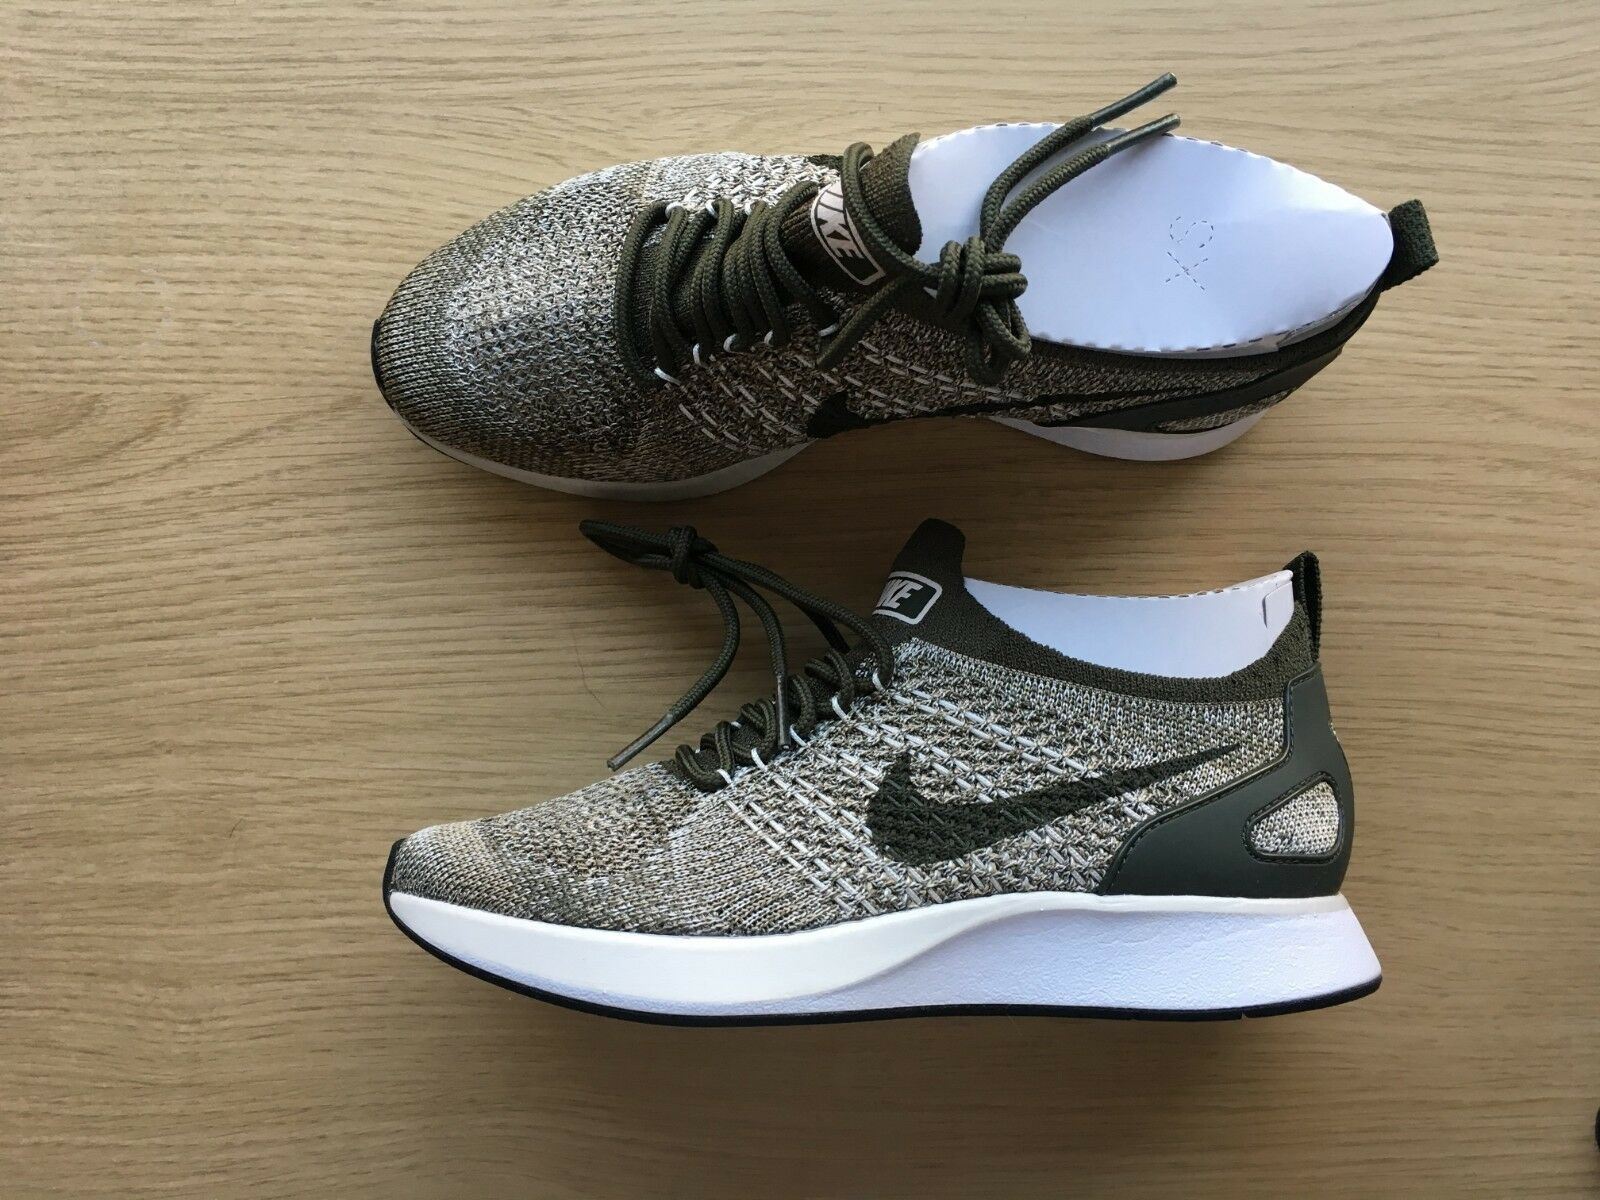 1eea3f9d70d Details about WOMENS NIKE AIR ZOOM MARIAH FLYKNIT RACER PREMIUM - UK SIZE 4  - GREEN/GREY/WHITE